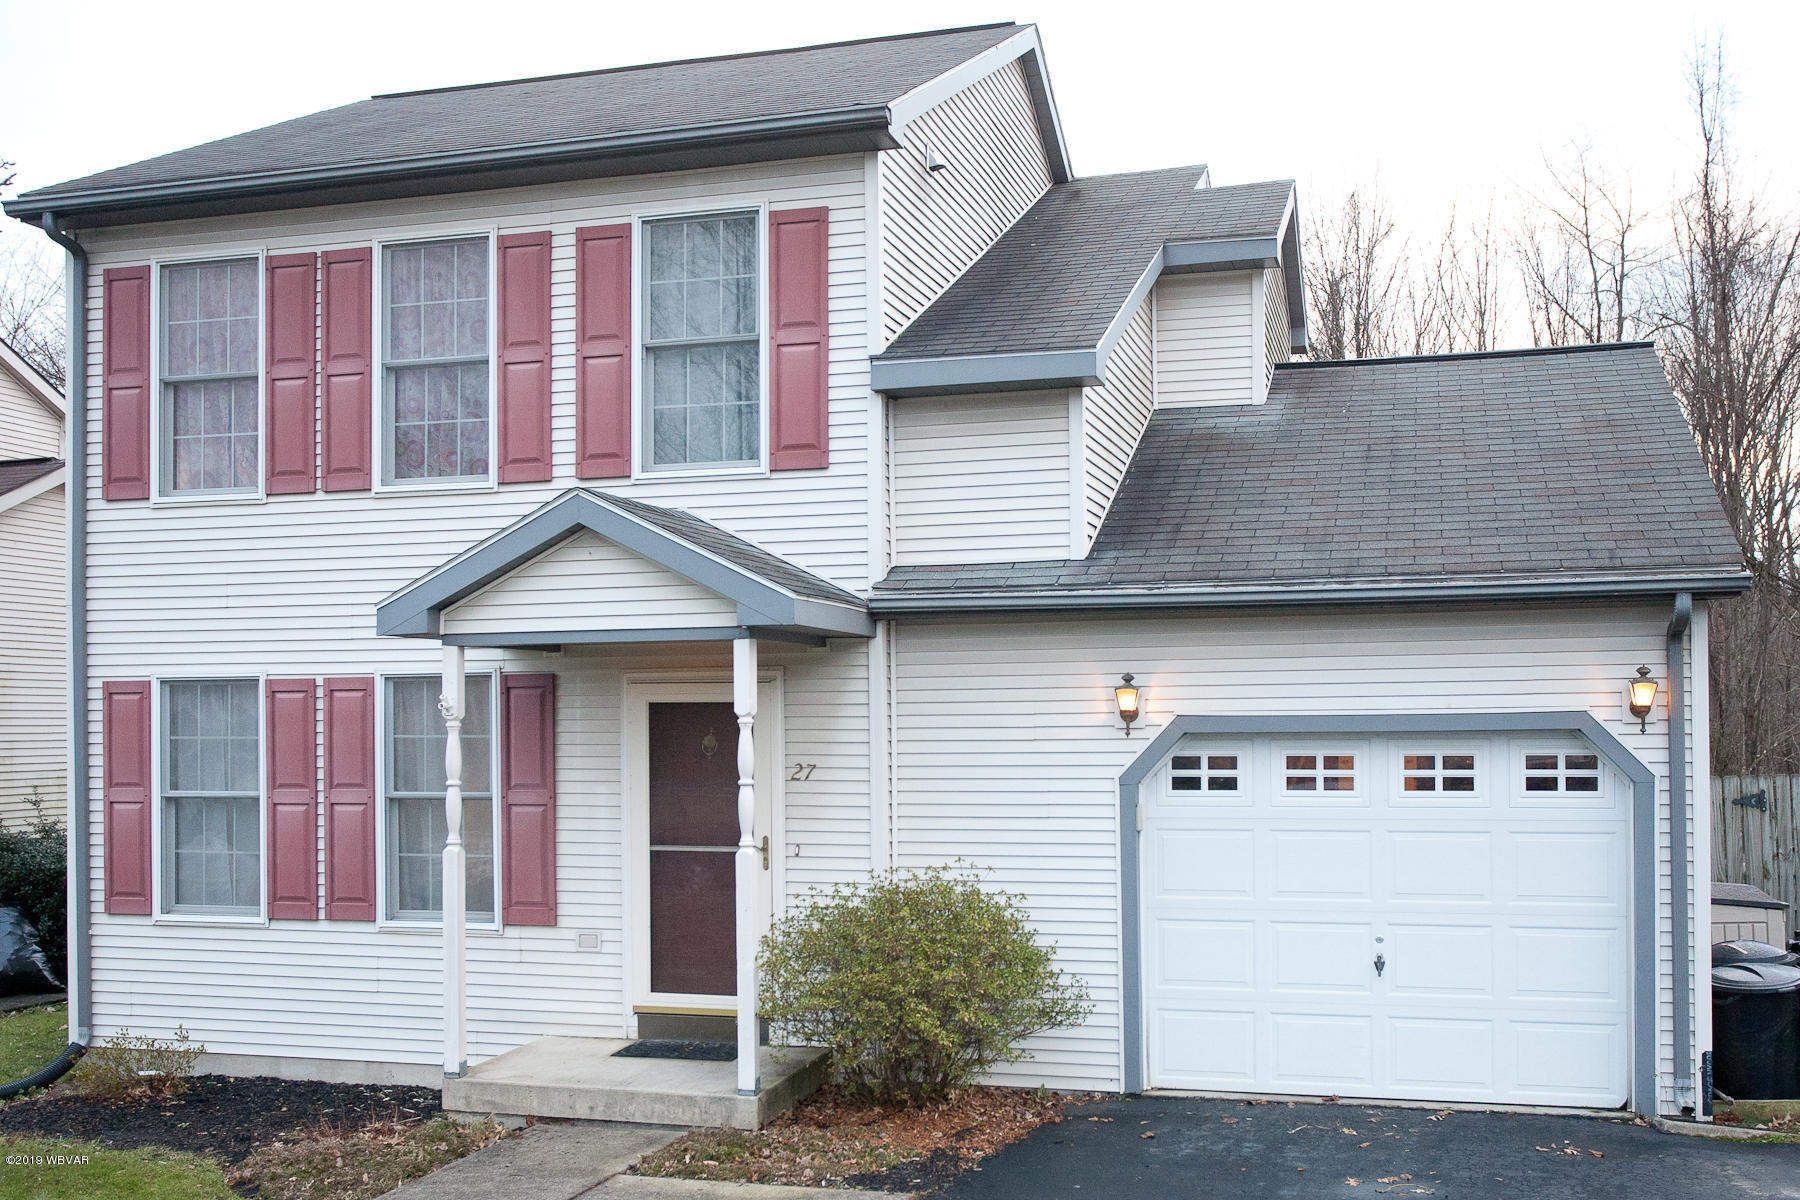 27 TERRACE LANE,Williamsport,PA 17701,3 Bedrooms Bedrooms,1 BathroomBathrooms,Residential,TERRACE,WB-86136